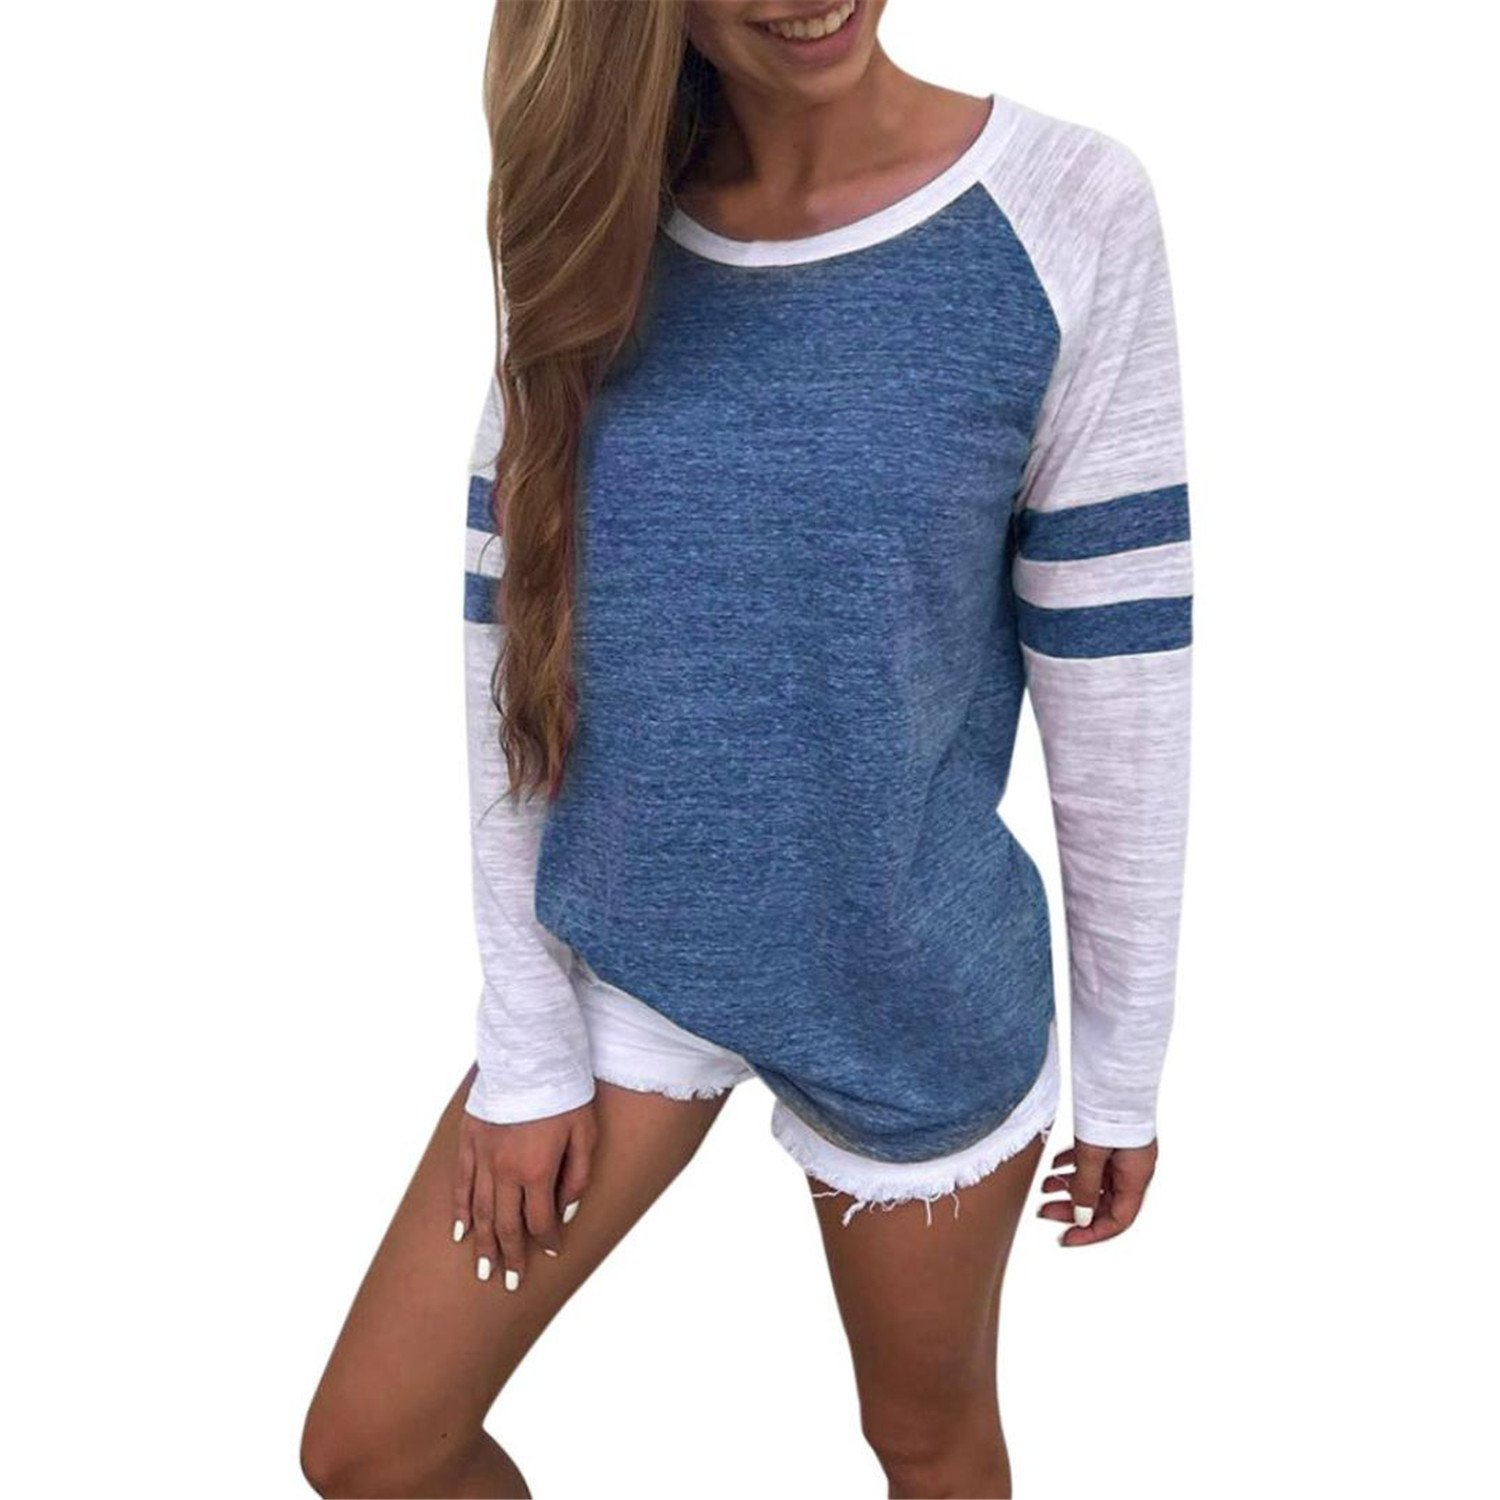 KESEE Womens Clothing☀ Fashion Ladies Long Sleeve Splice Blouse Tops Clothes T Shirt (XL, Blue 1)